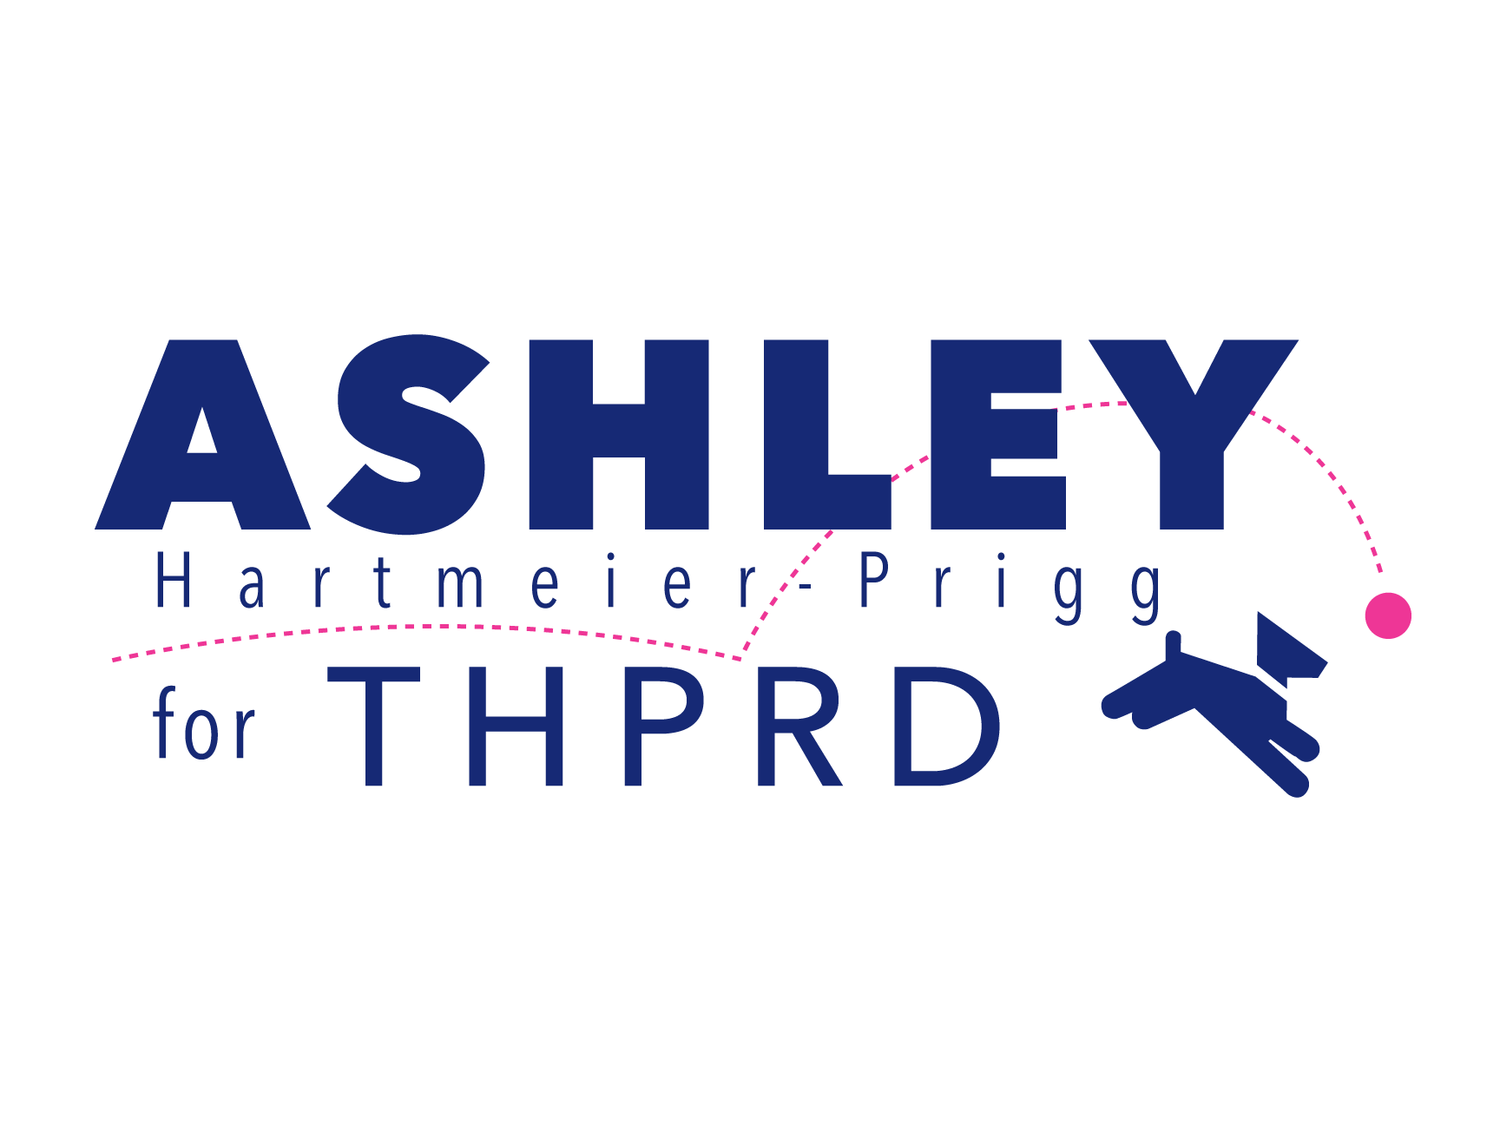 Ashley Hartmeier-Prigg